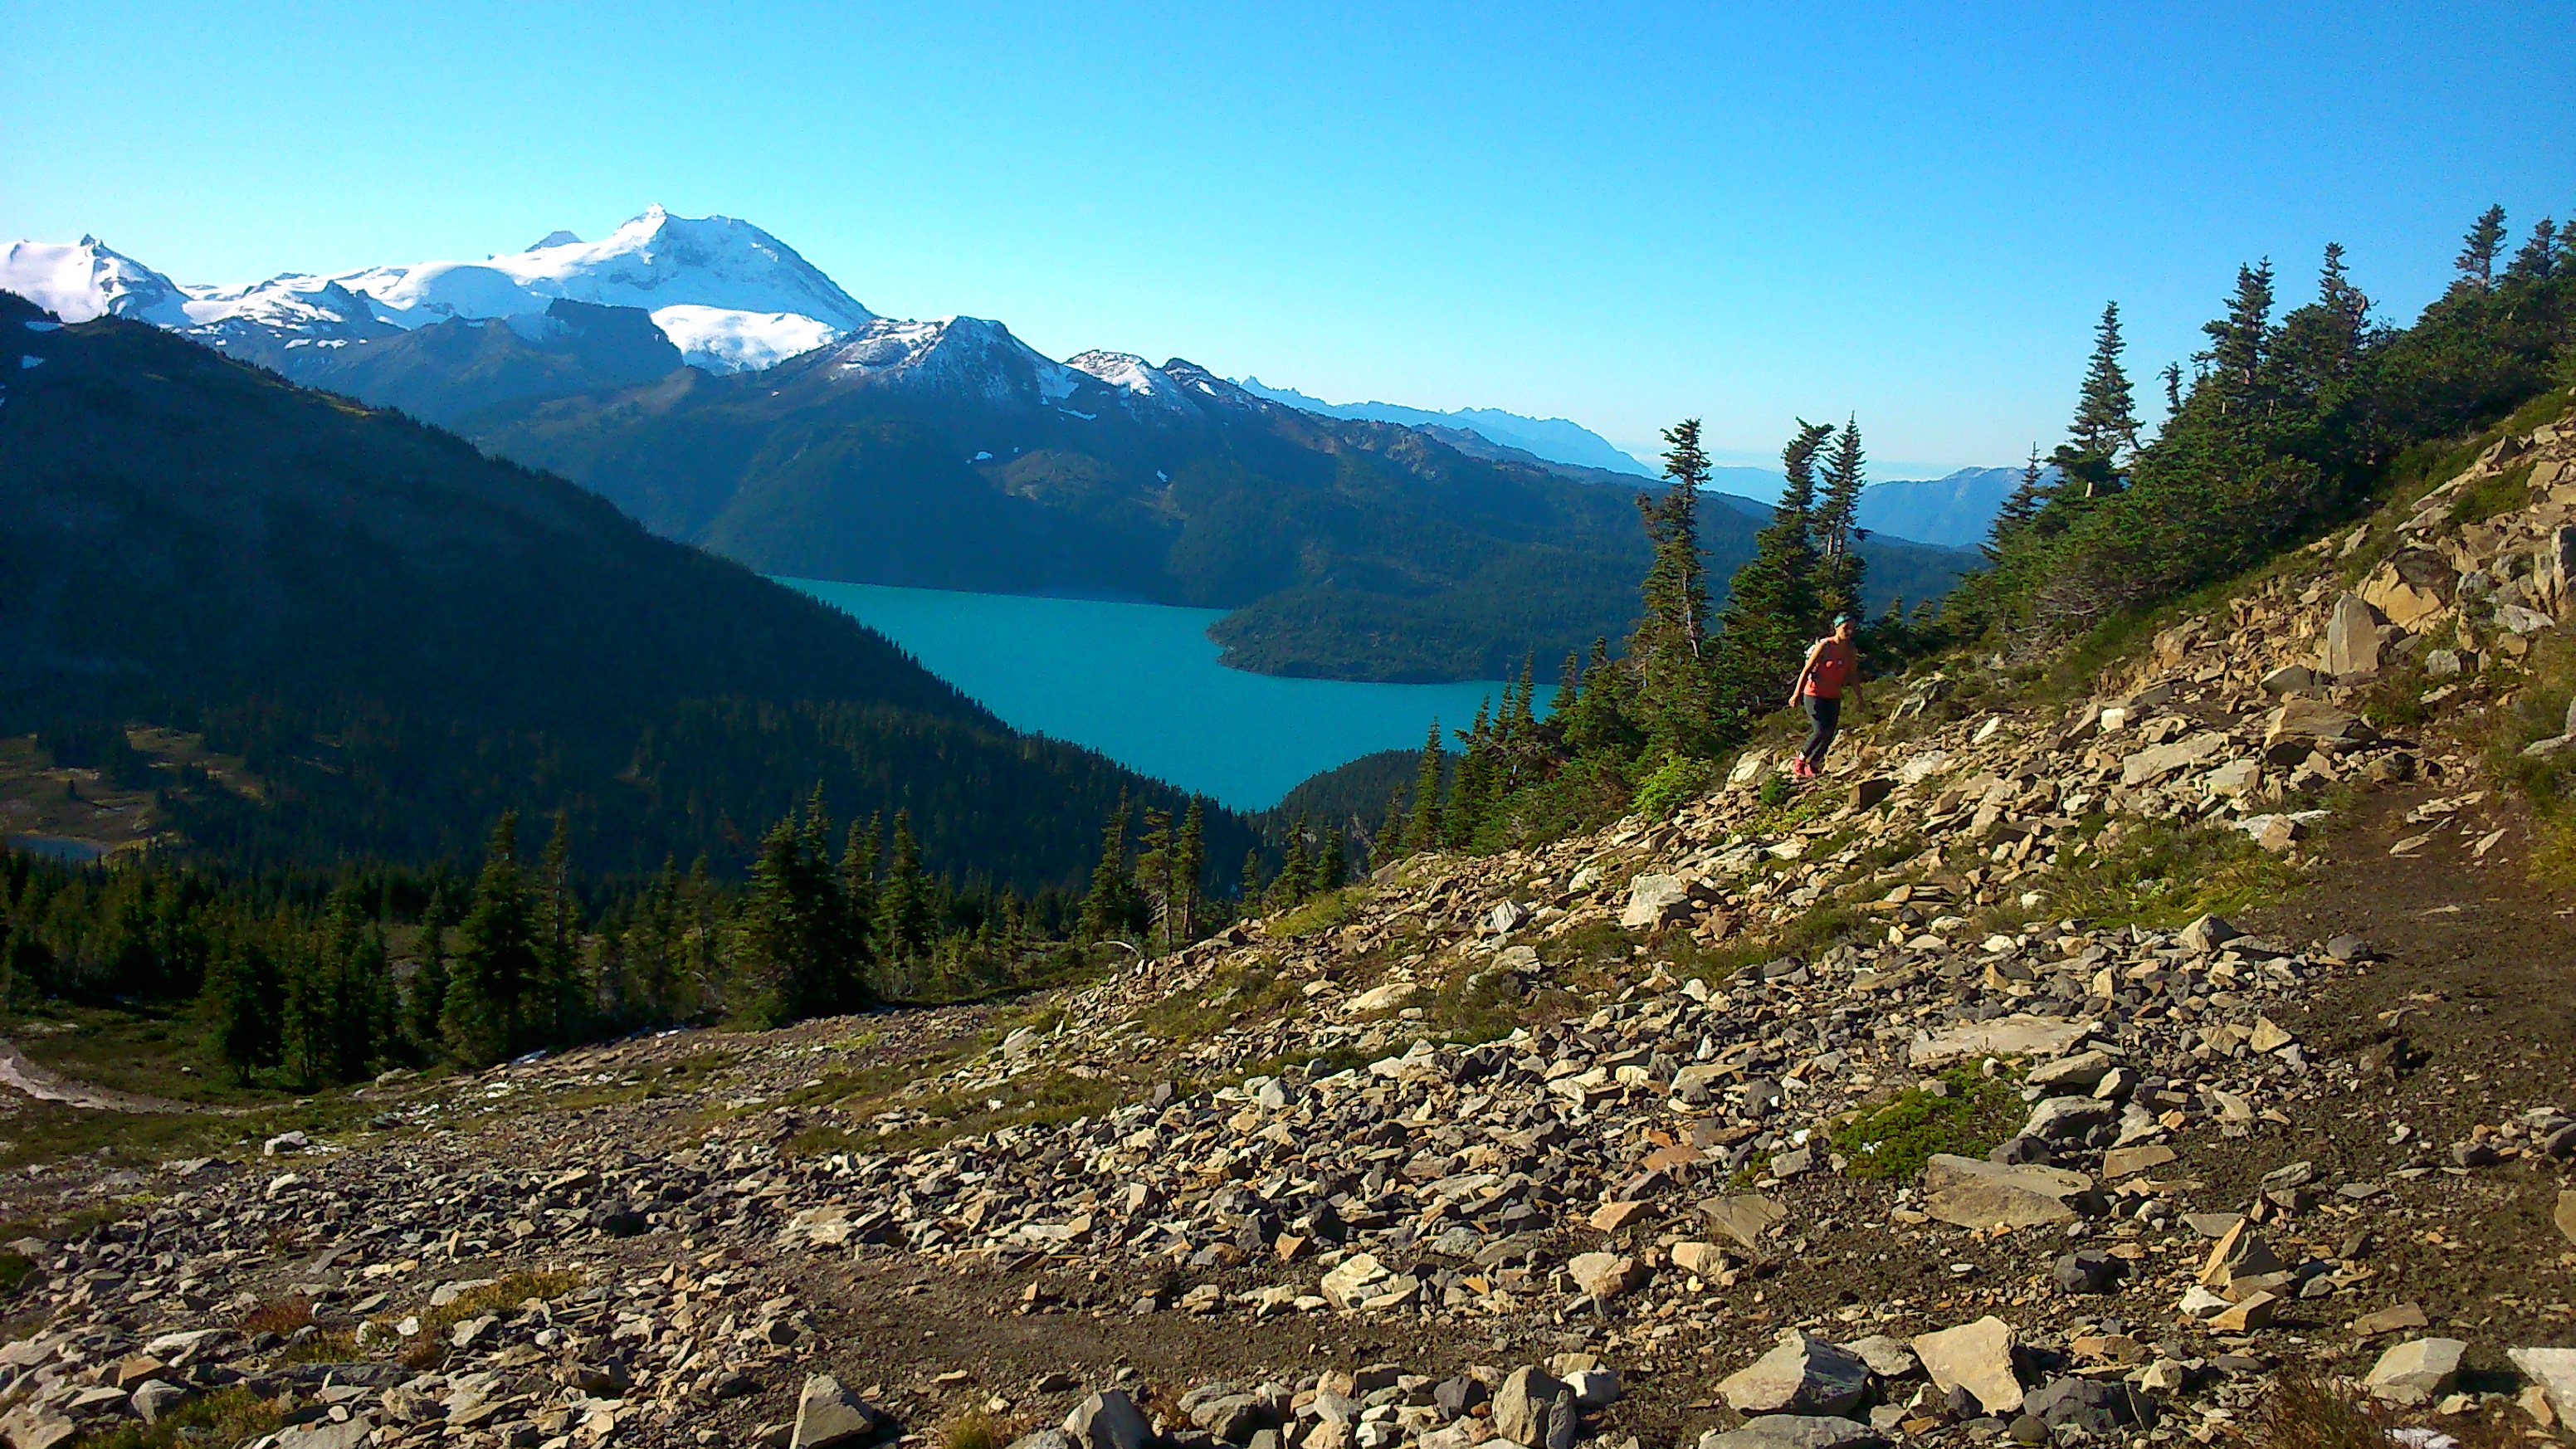 Geneviève running up towards Black Tusk, with Garibaldi Lake behind. Photo E. Skierszkan.